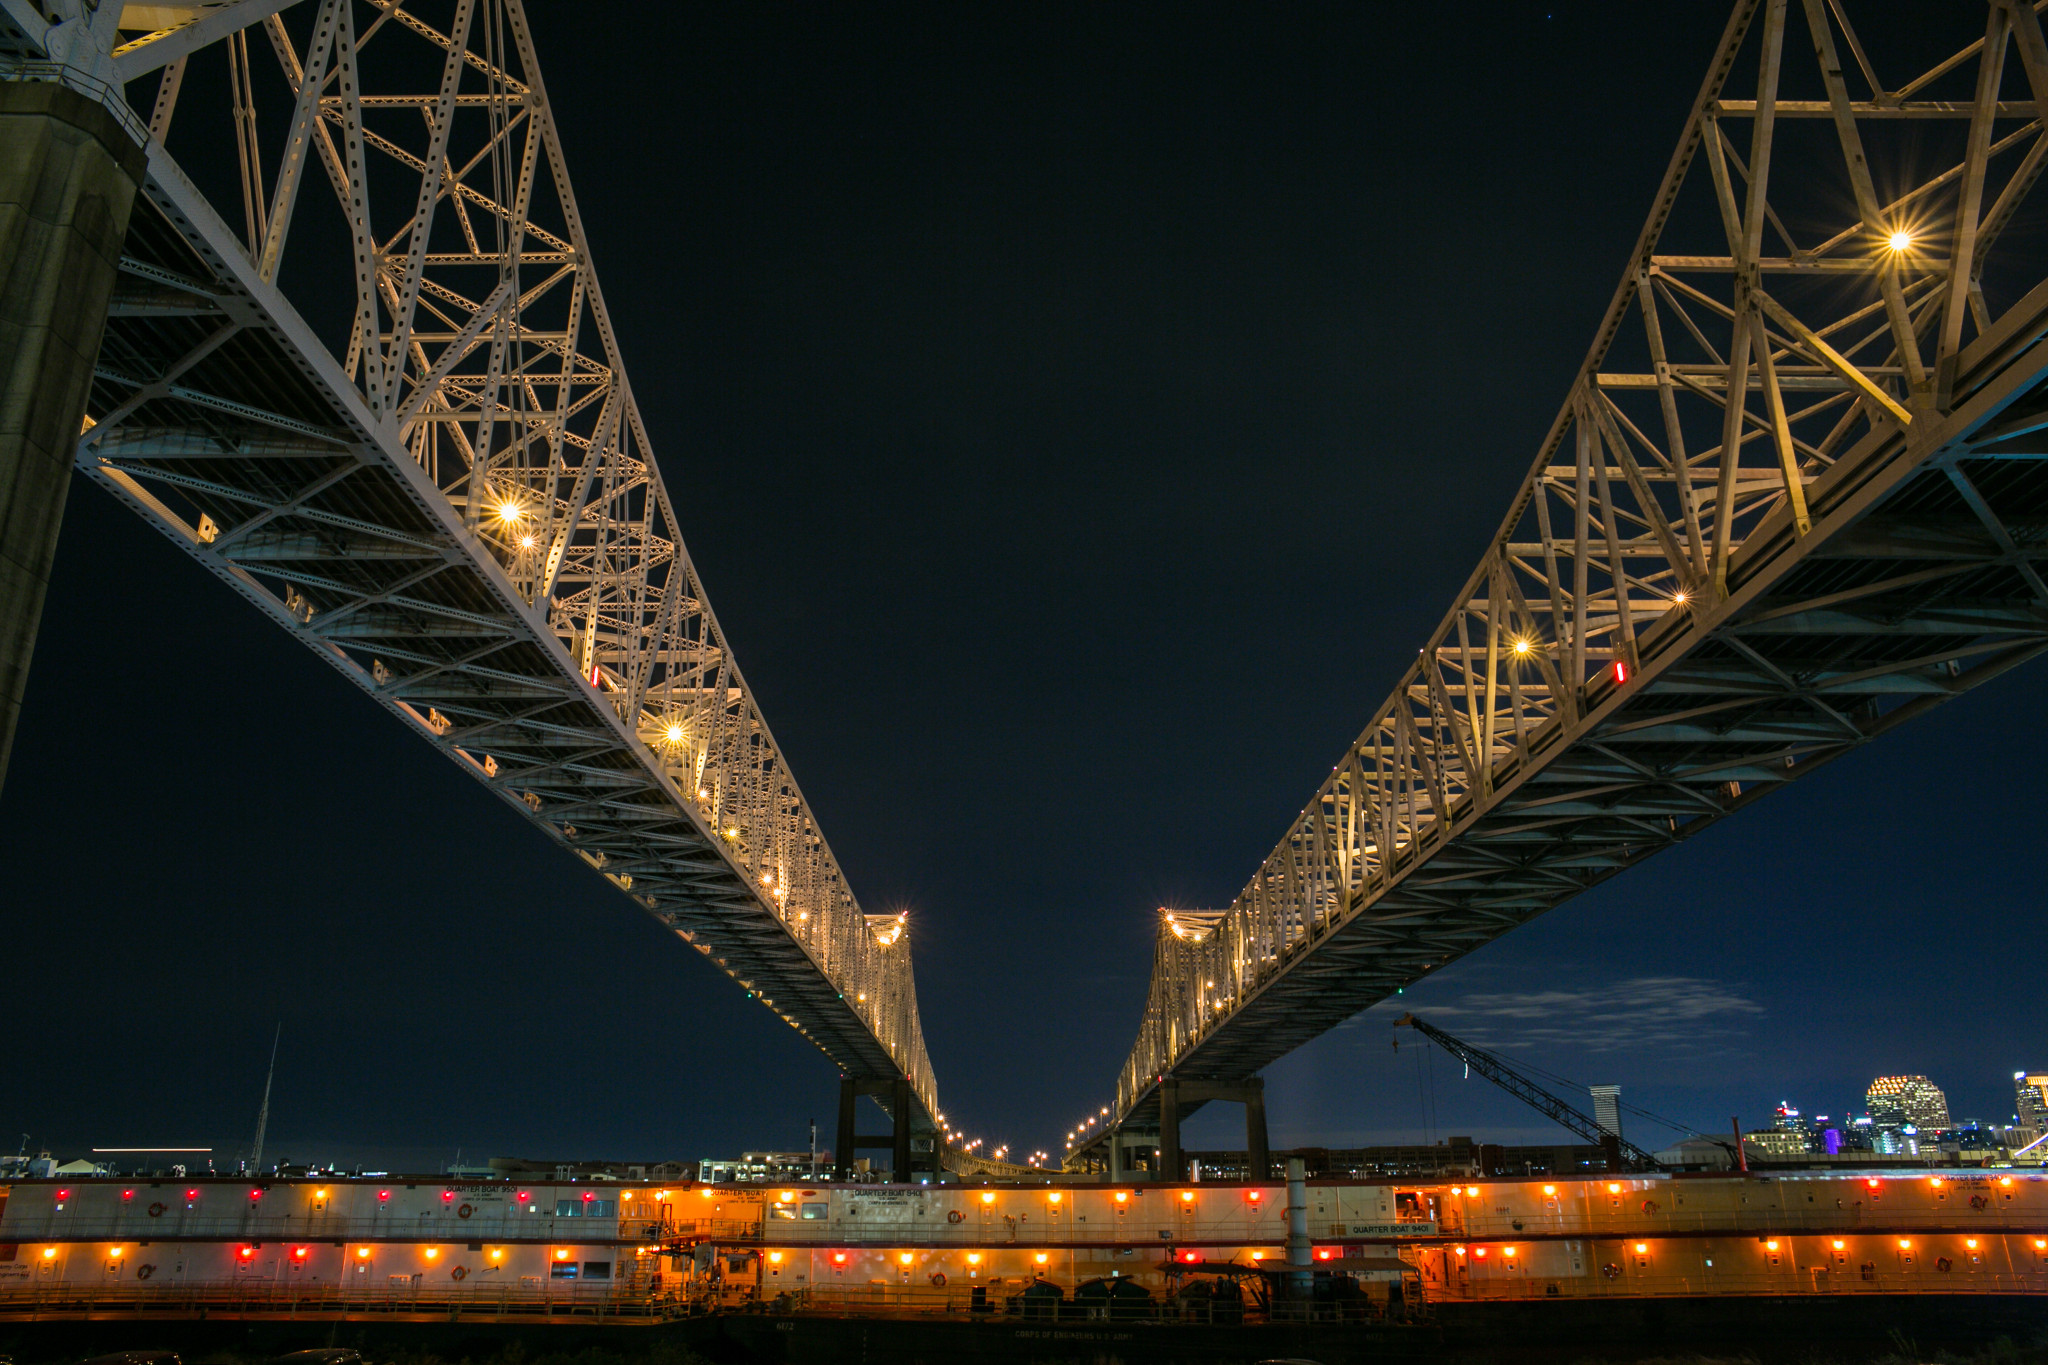 The Crescent City Connection at night. (Photo: Rebecca Todd)